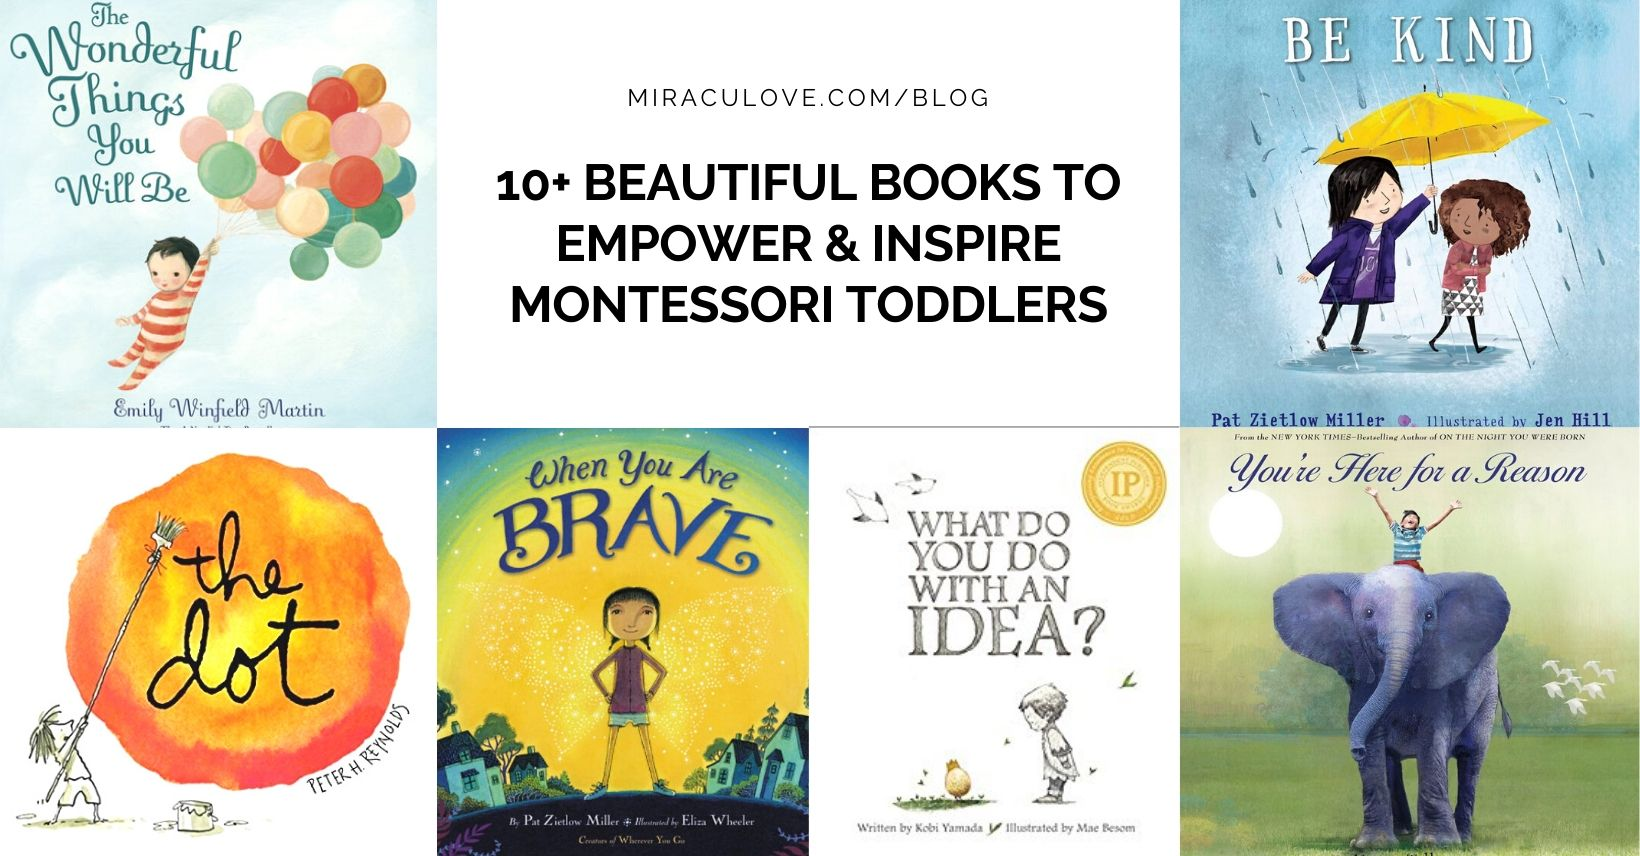 10+ Beautiful Books to Empower & Inspire Montessori Toddlers